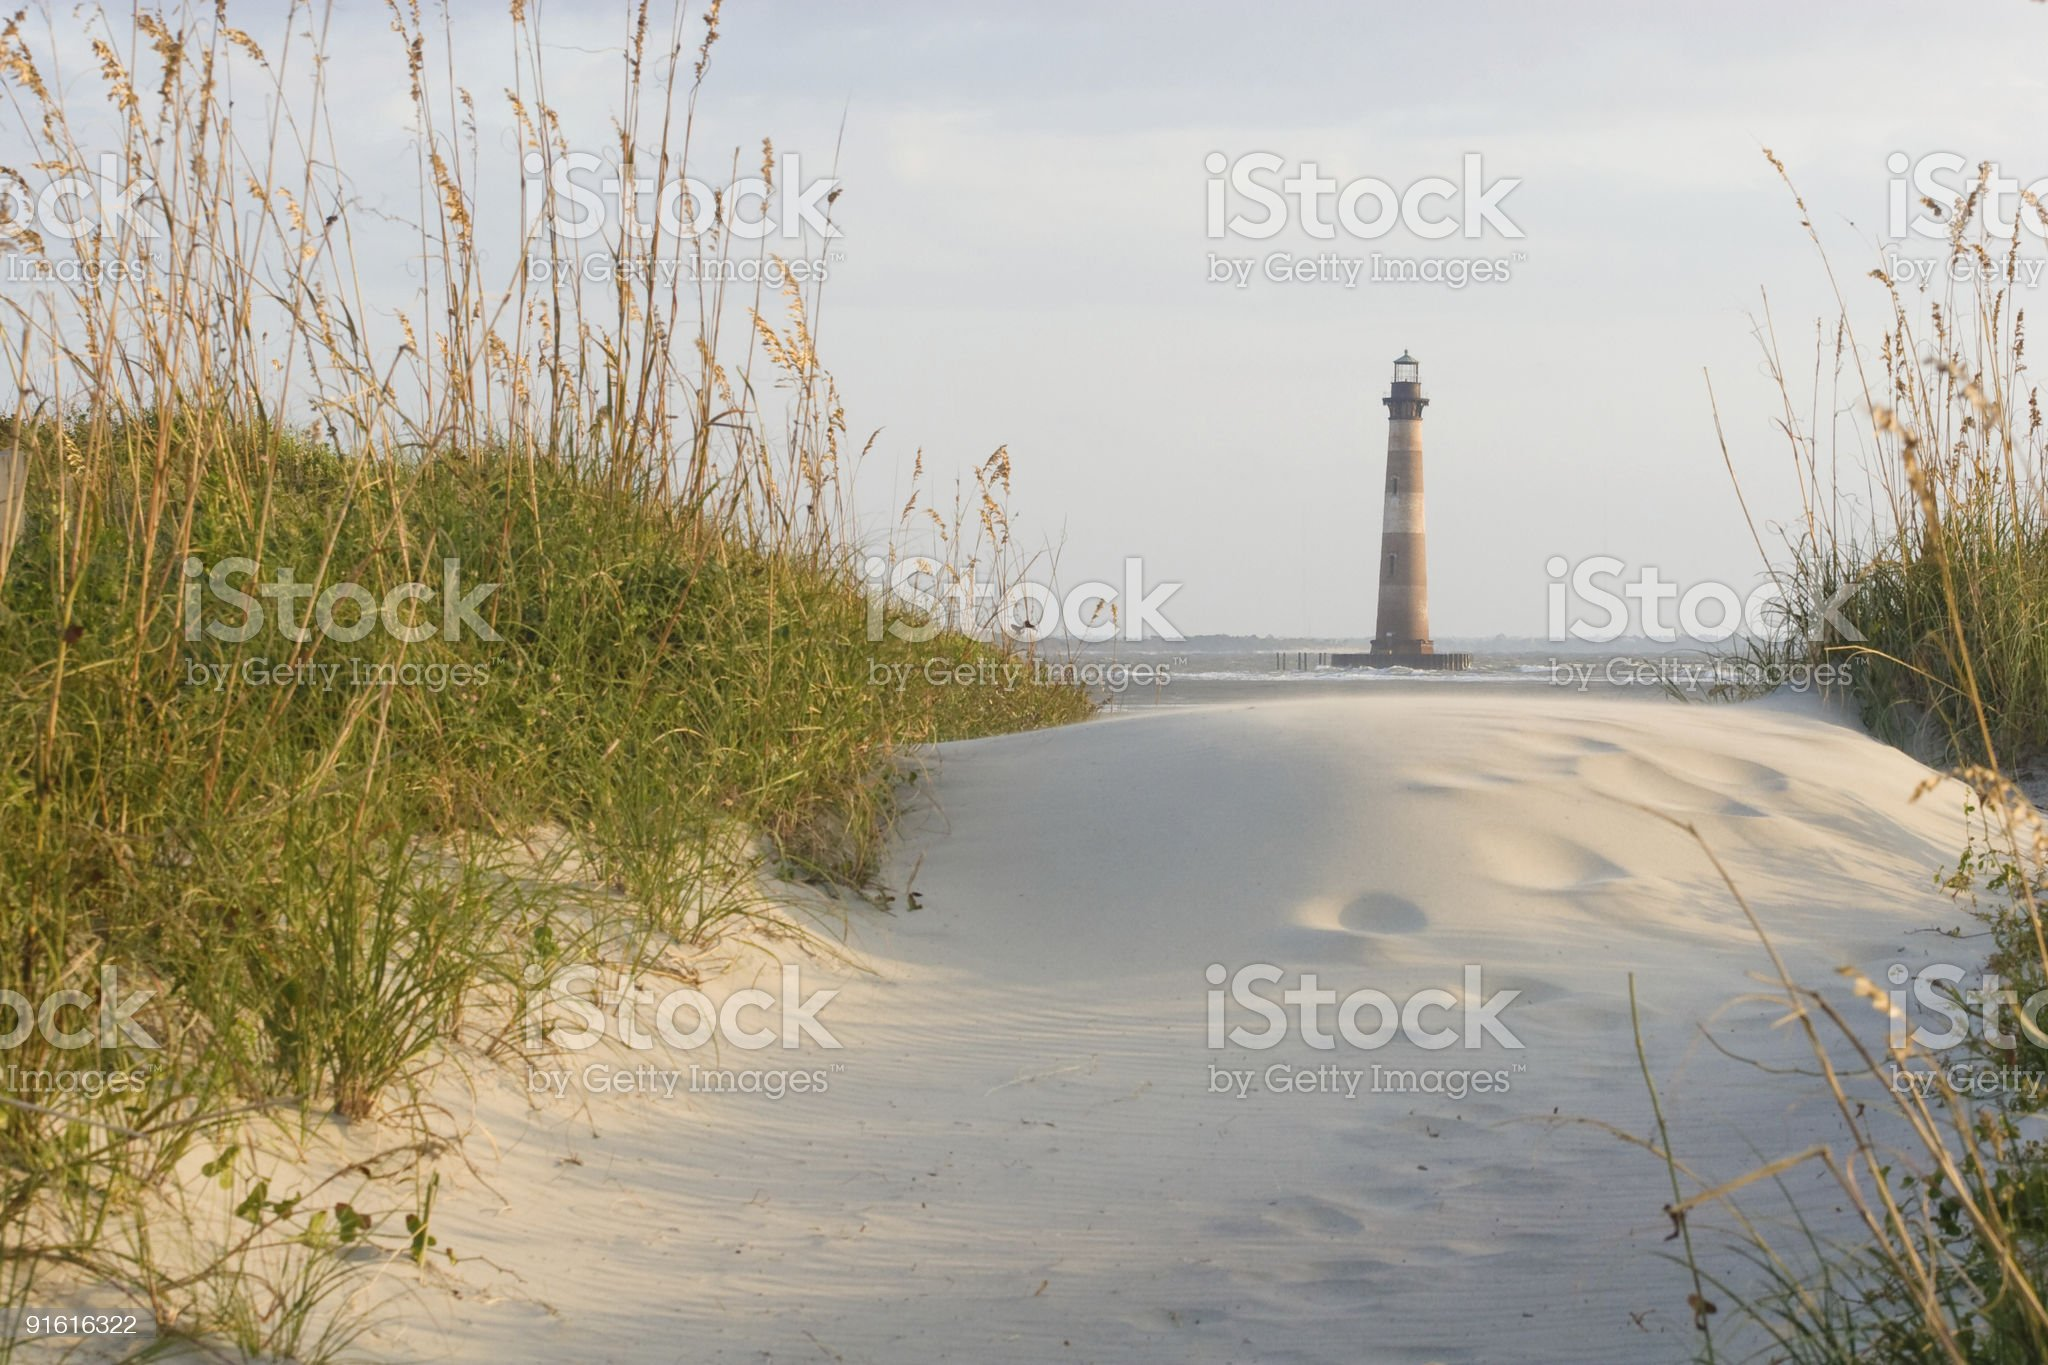 Lighthouse on the sandy beach surrounded by greenery growth royalty-free stock photo